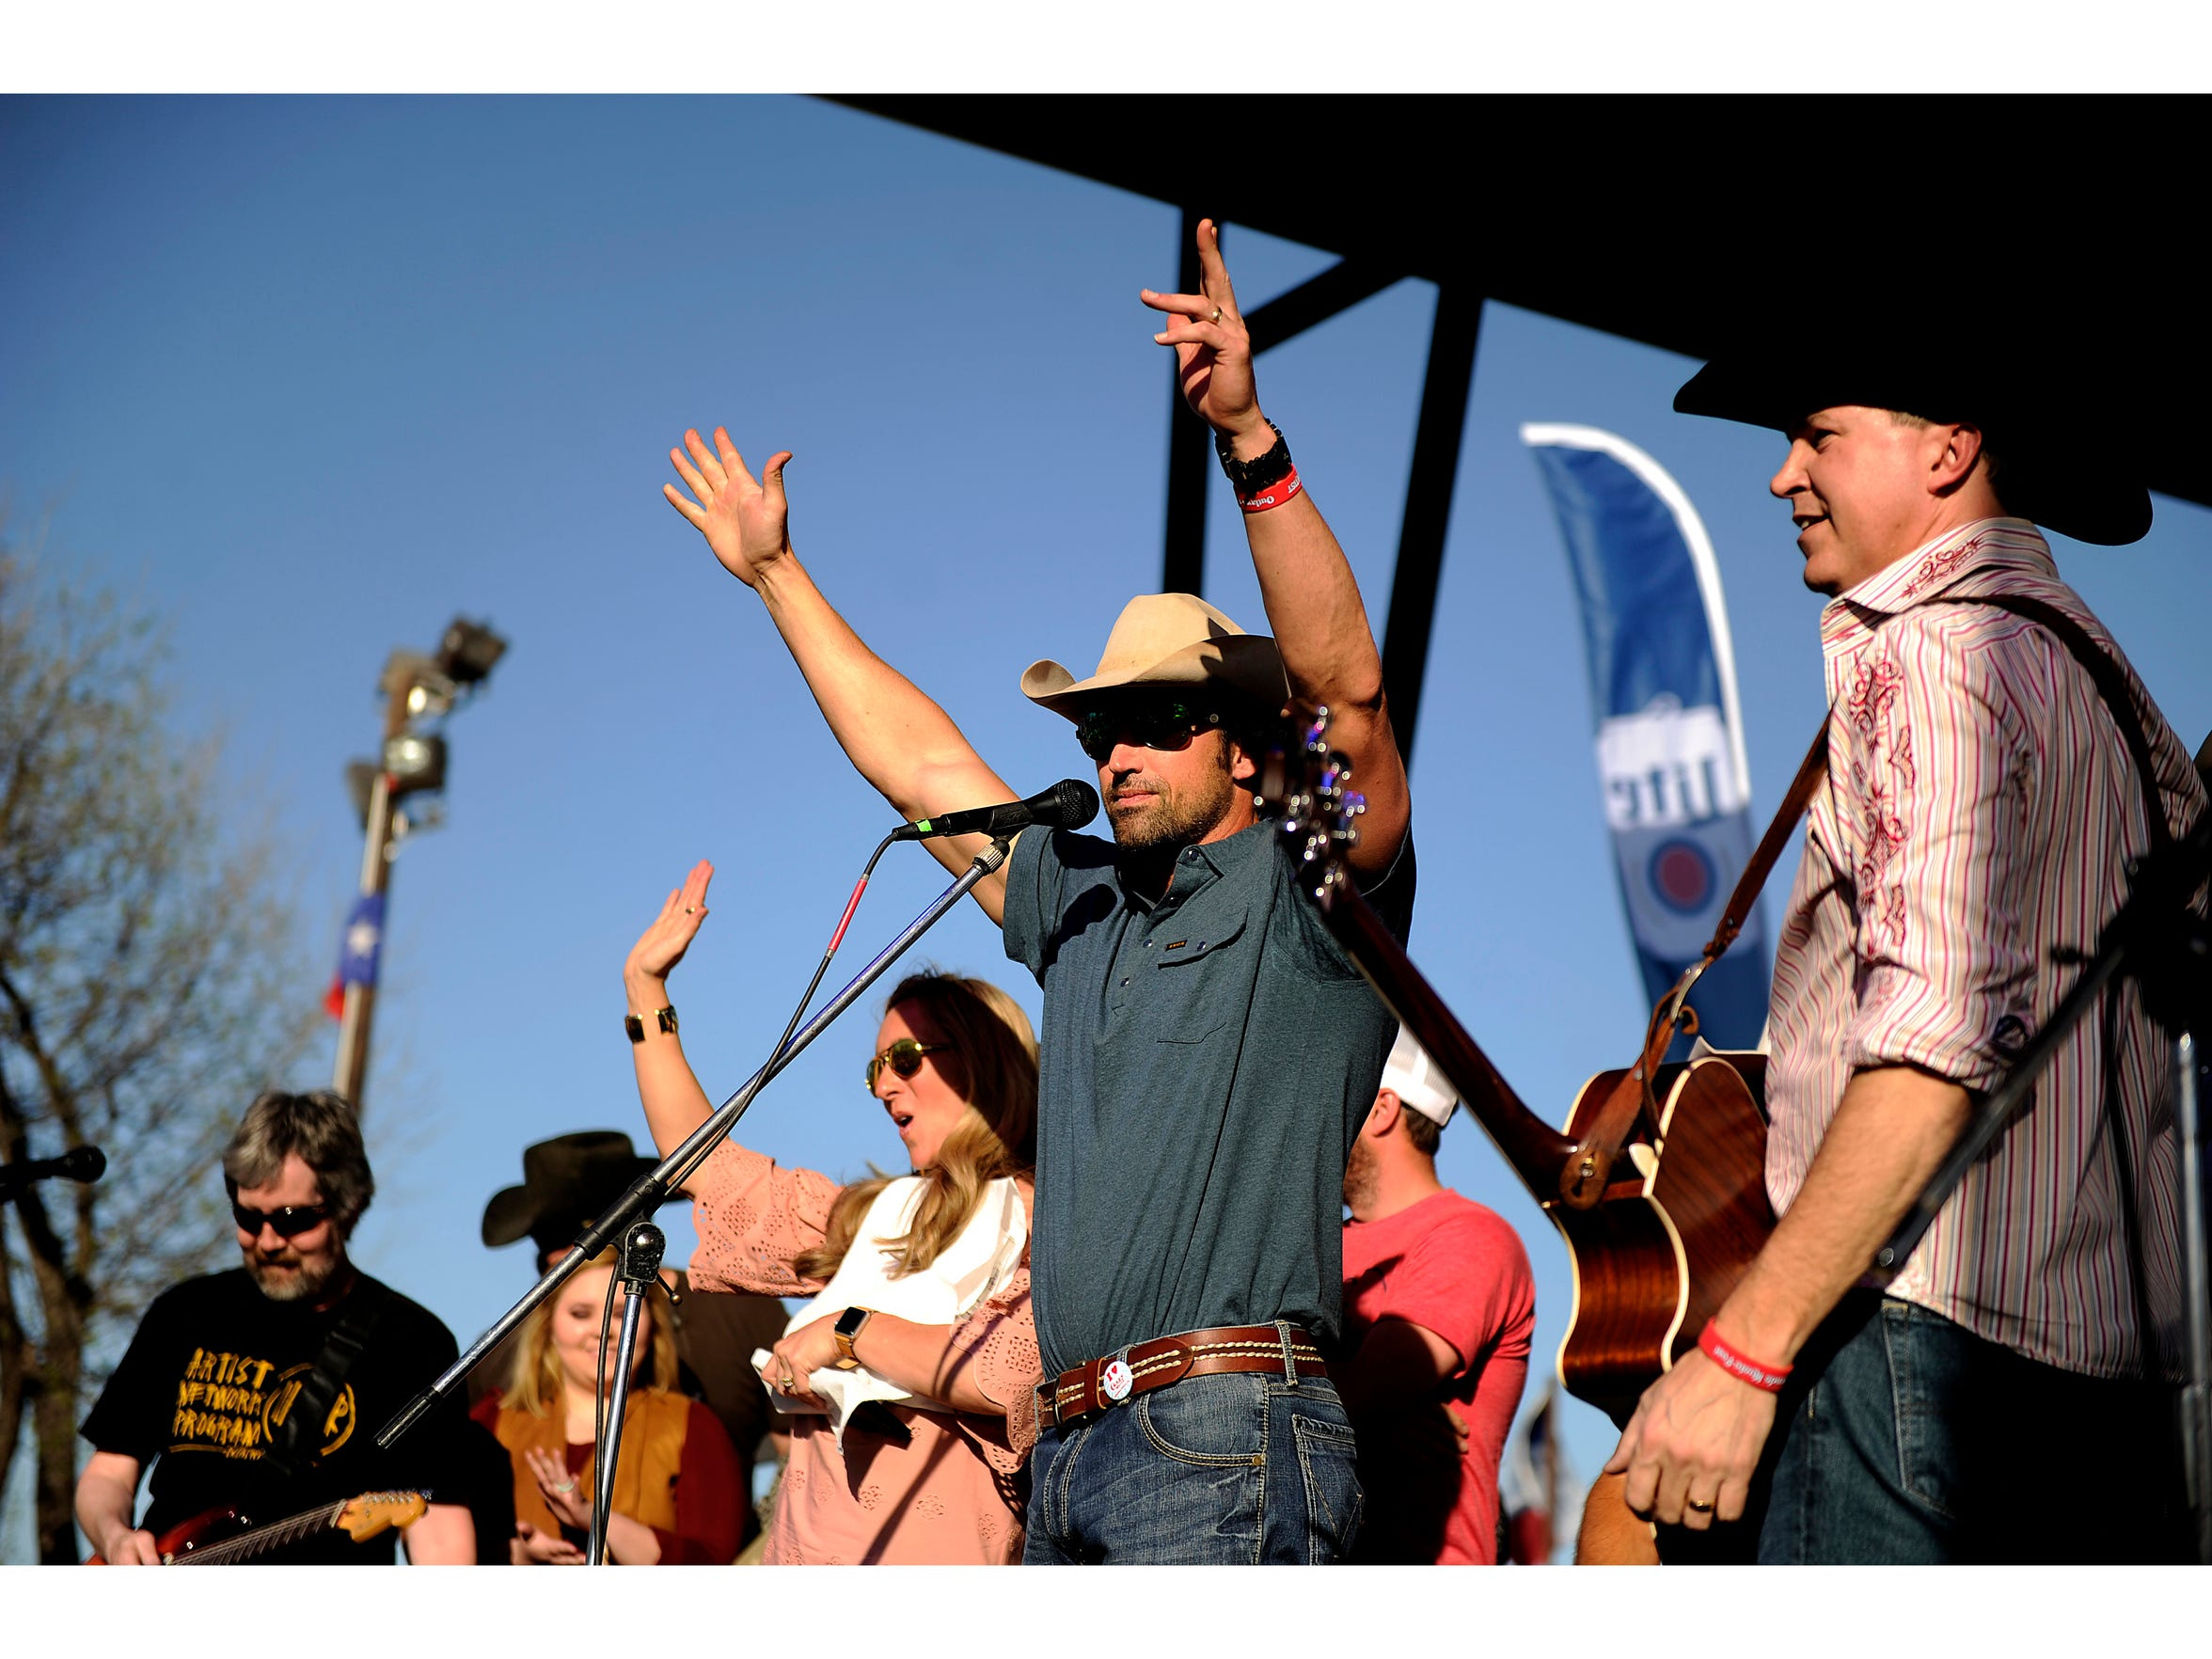 Mark Powell (center) pumps up the crowd before announcing Cooder Graw's Matt Martindale as the 2017 inductee into the Outlaws and Legends hall of fame during the 2017 Outlaws and Legends Music Festival. Martindale performed at the first show in 2011. Cooder Graw is back for the 10th anniversary show.